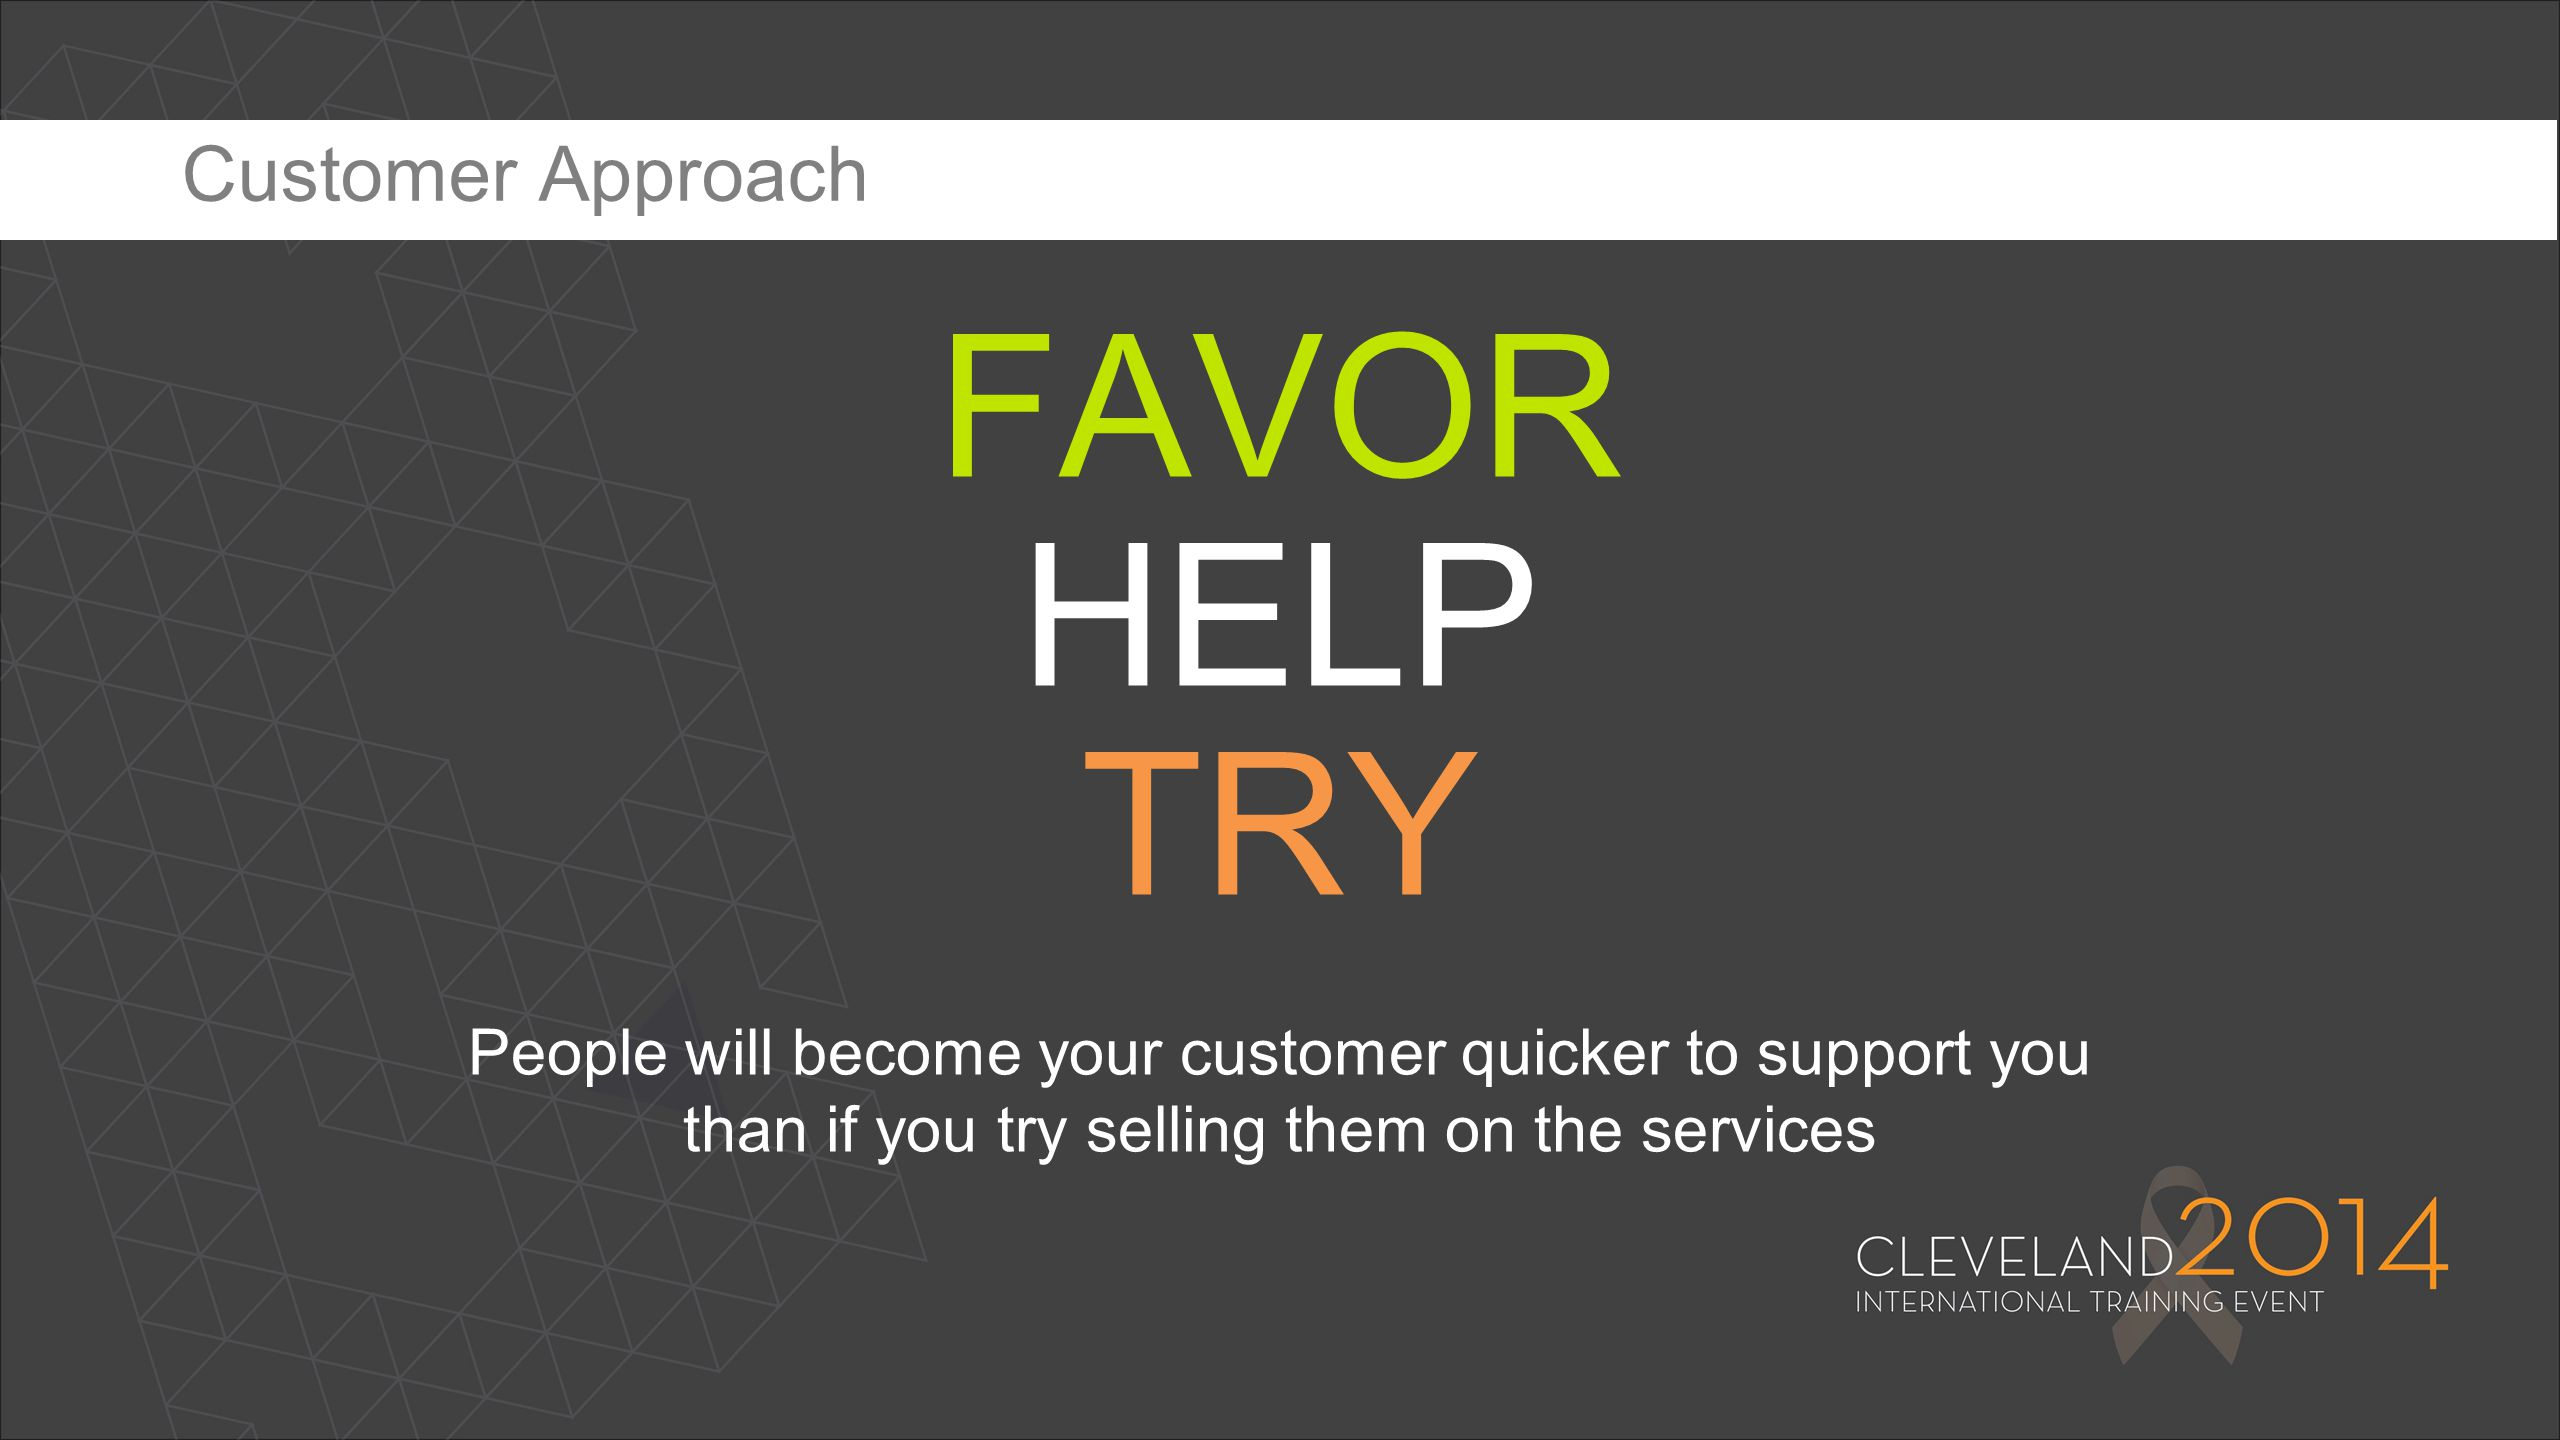 FAVOR HELP TRY Customer Approach